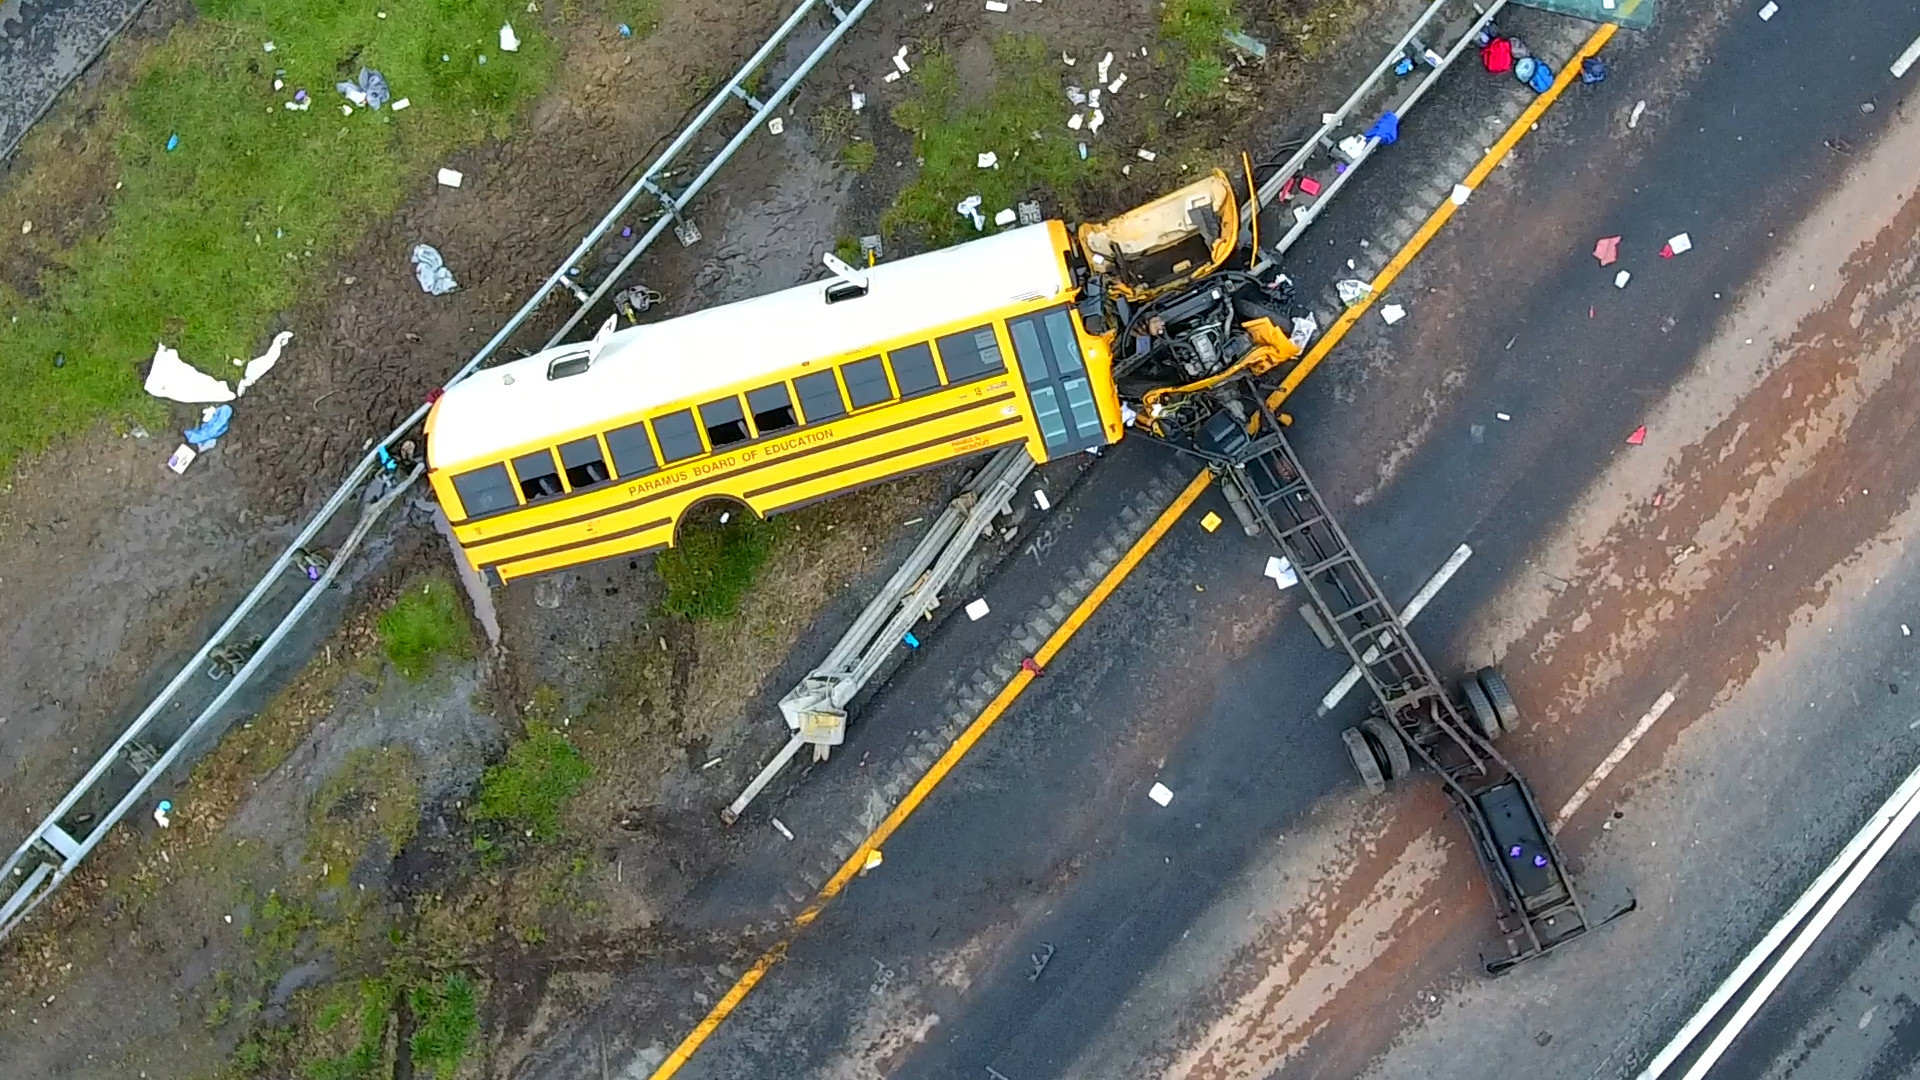 NJ school bus driver sentenced to 10 years in prison for illegal interstate U-turn and wreck that killed one teacher and a fifth-grader